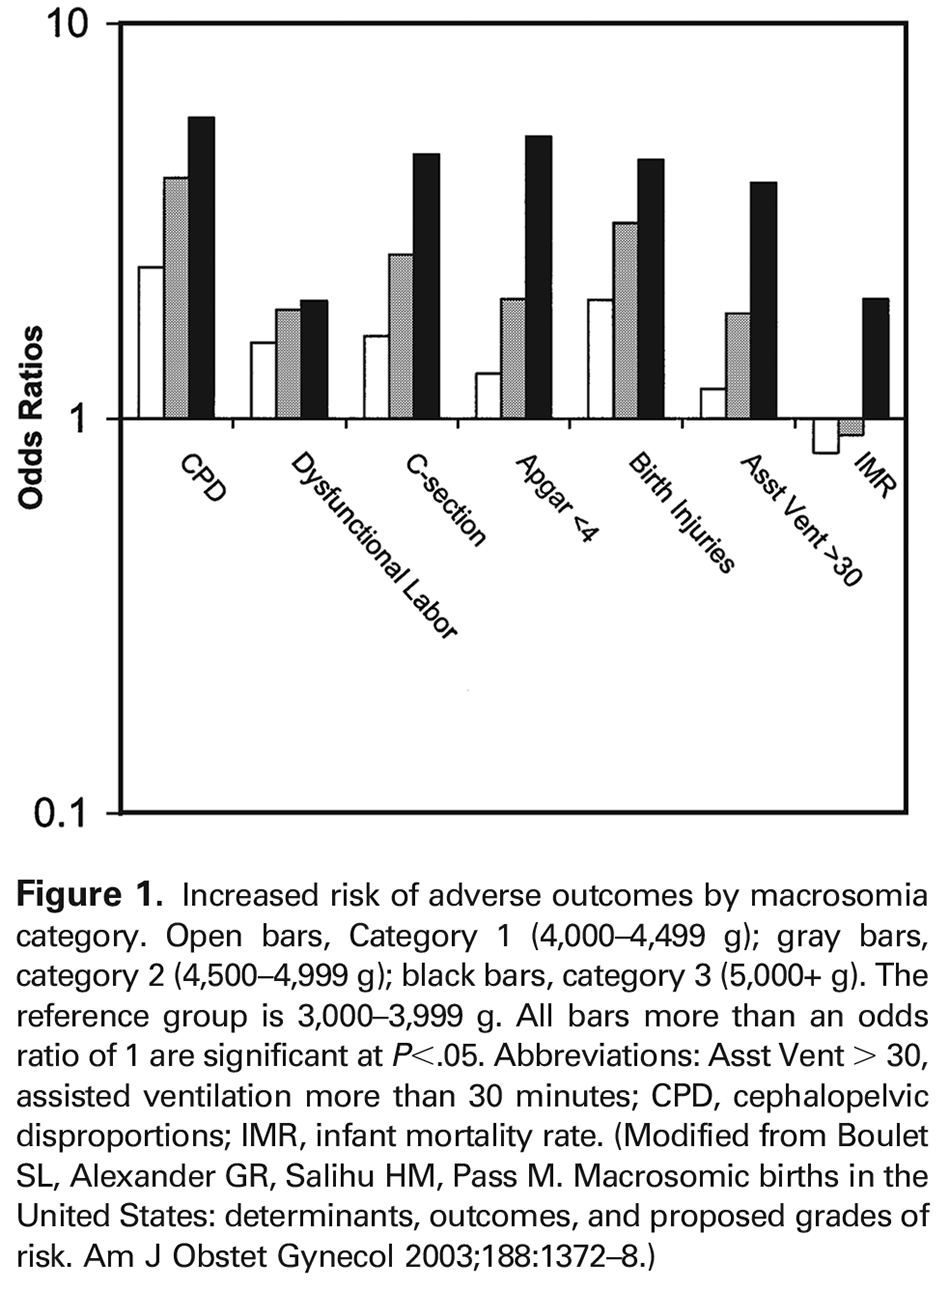 Figure 1. Increased risk of adverse outcomes by macrosomia category. Open bars, Category 1 (4,000–4,499 g); gray bars, category 2 (4,500–4,999 g); black bars, category 3 (5,000+ g). The reference group is 3,000–3,999 g. All bars more than an odds ratio of 1 are significant at P <.05. Abbreviations: Asst Vent > 30, assisted ventilation more than 30 minutes; CPD, cephalopelvic disproportions; IMR, infant mortality rate. (Modified from Boulet SL, Alexander GR, Salihu HM, Pass M. Macrosomic births in the United States: determinants, outcomes, and proposed grades of risk. Am J Obstet Gynecol 2003;188:1372–8.)